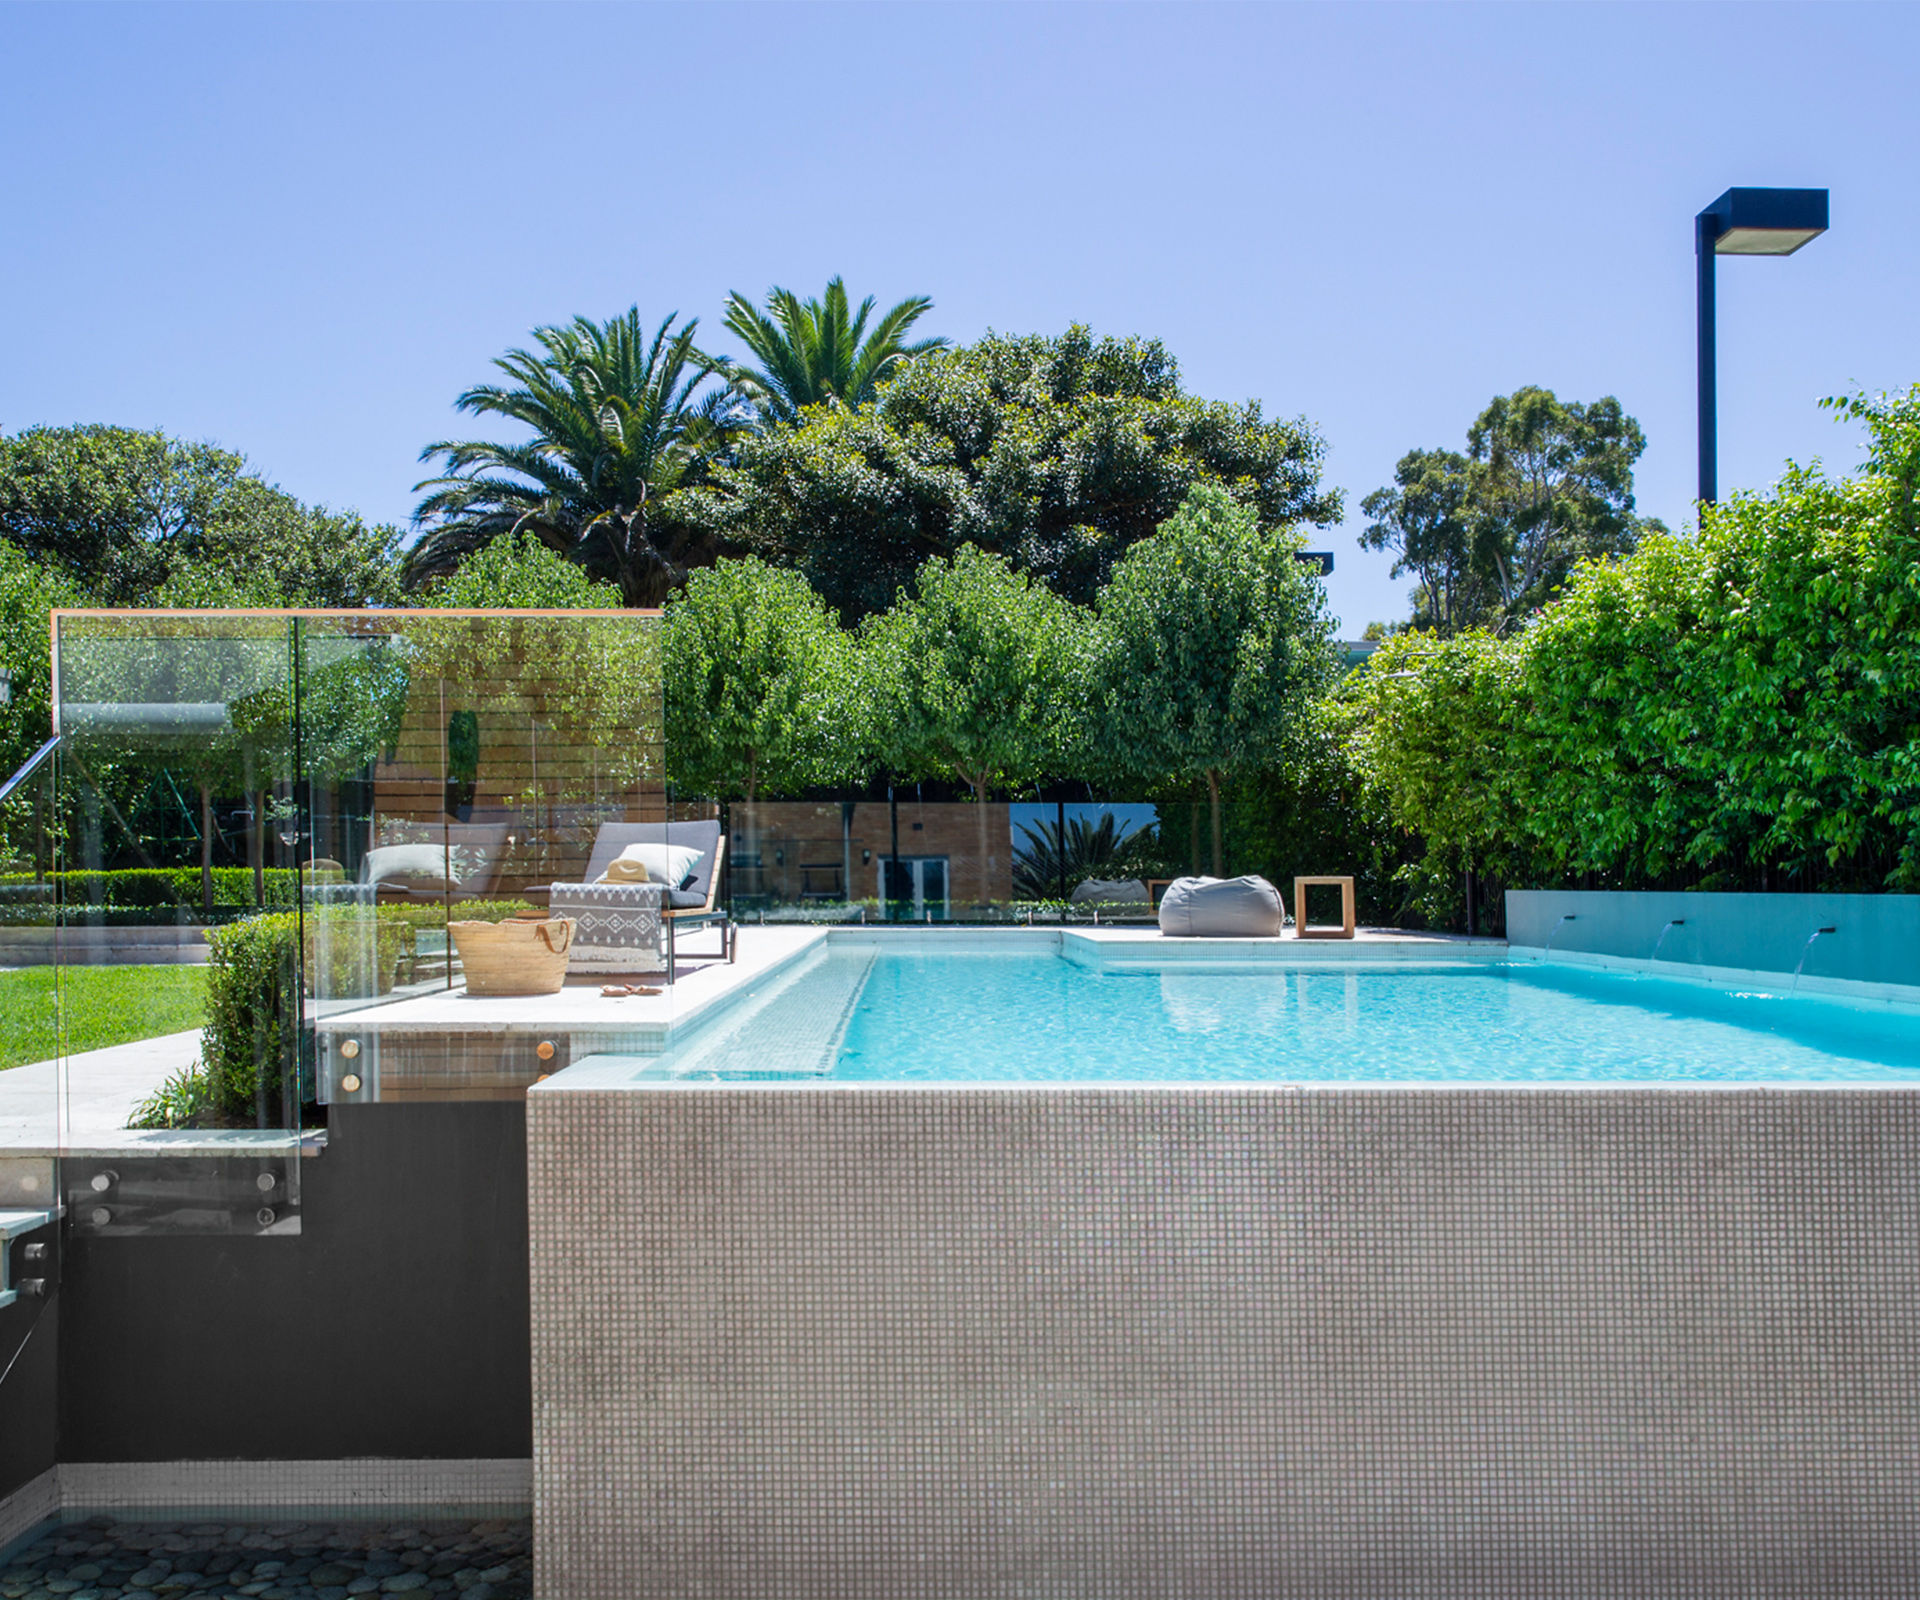 How long does it take to install a swimming pool?